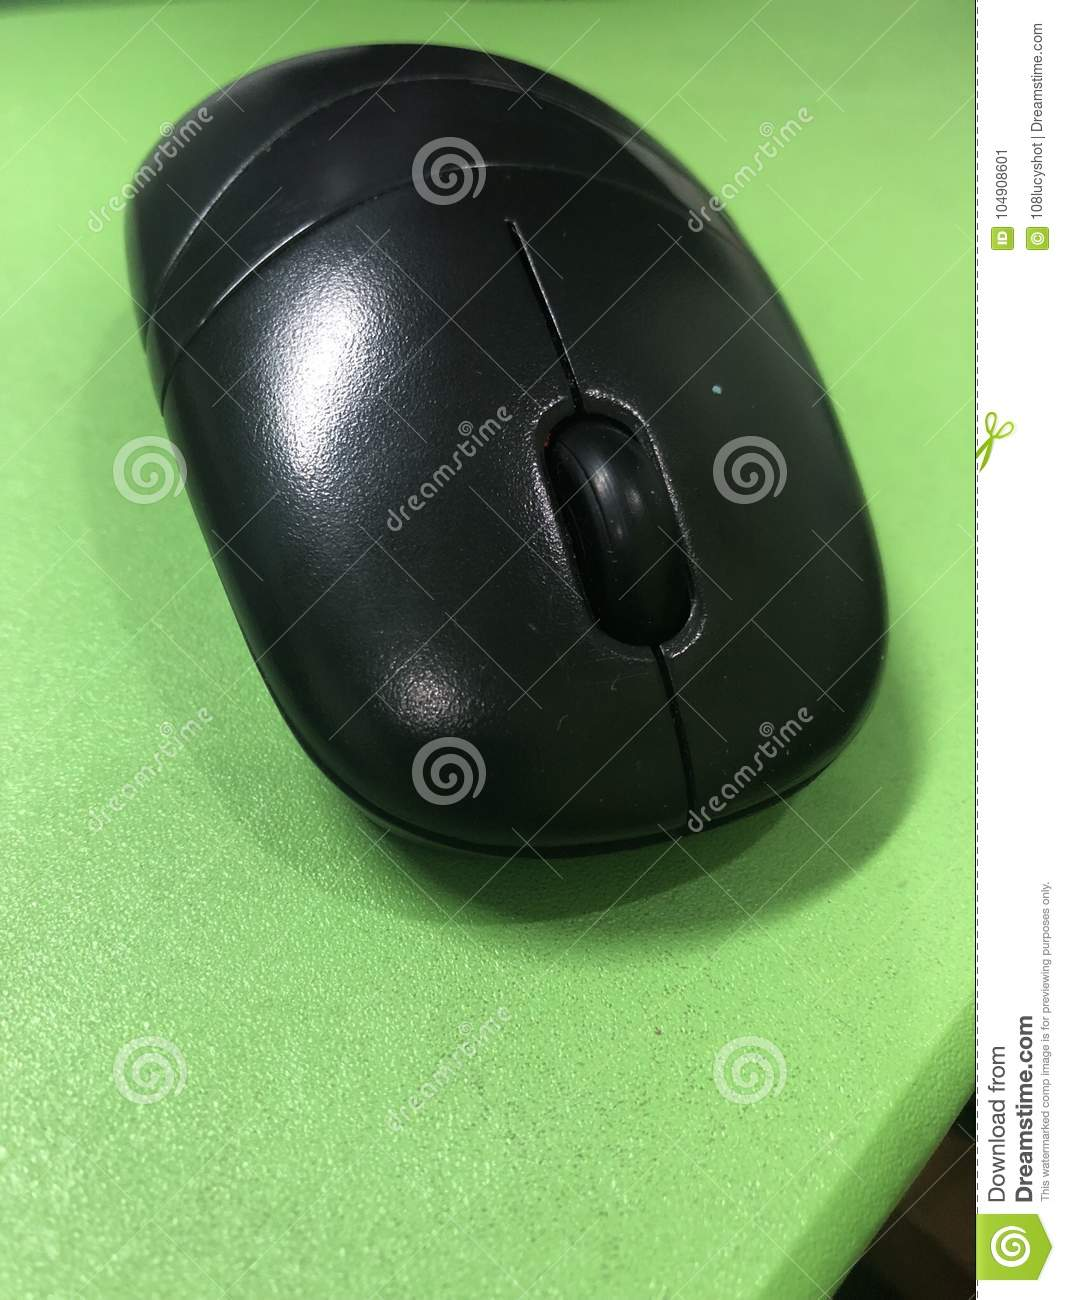 Black mouse at the green background